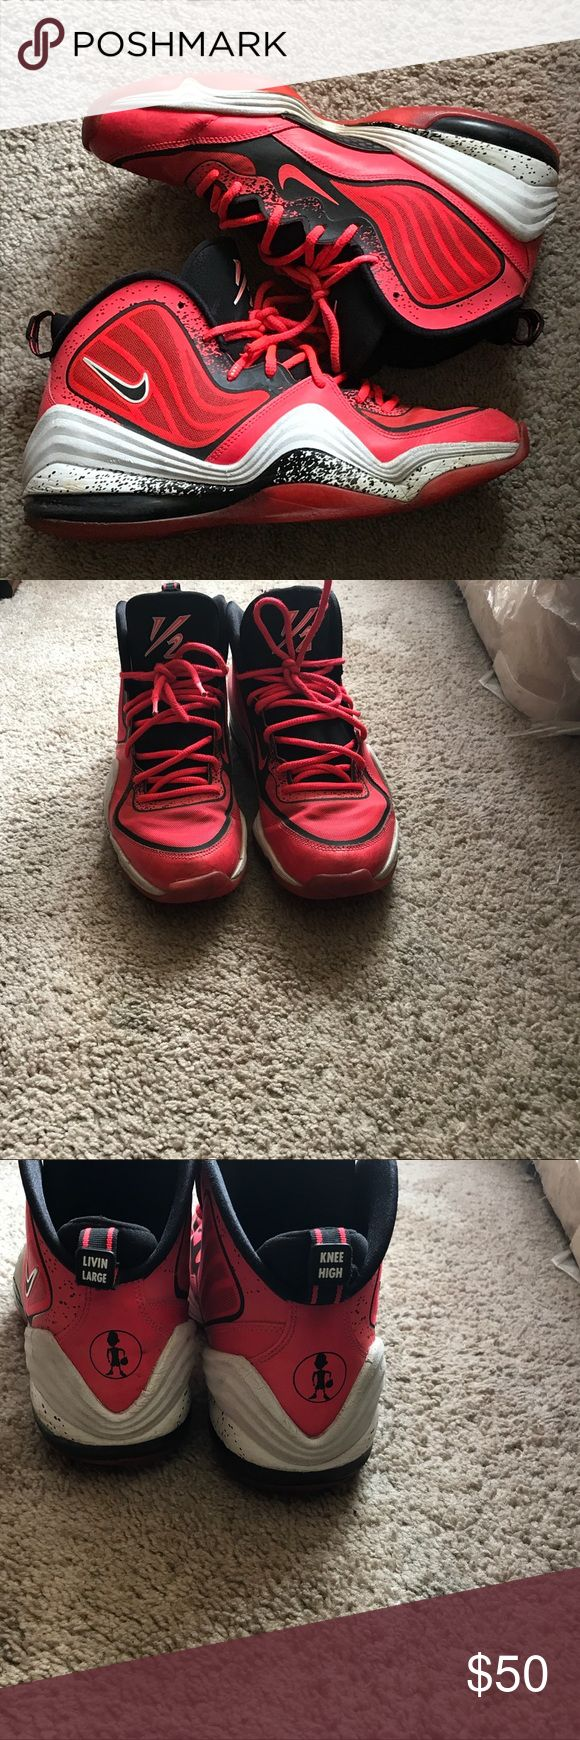 """Nike Air Penny 5's """"Lil Penny""""   Nice popping red   Size 11 shoe   Mint Condition Nike Shoes Sneakers"""